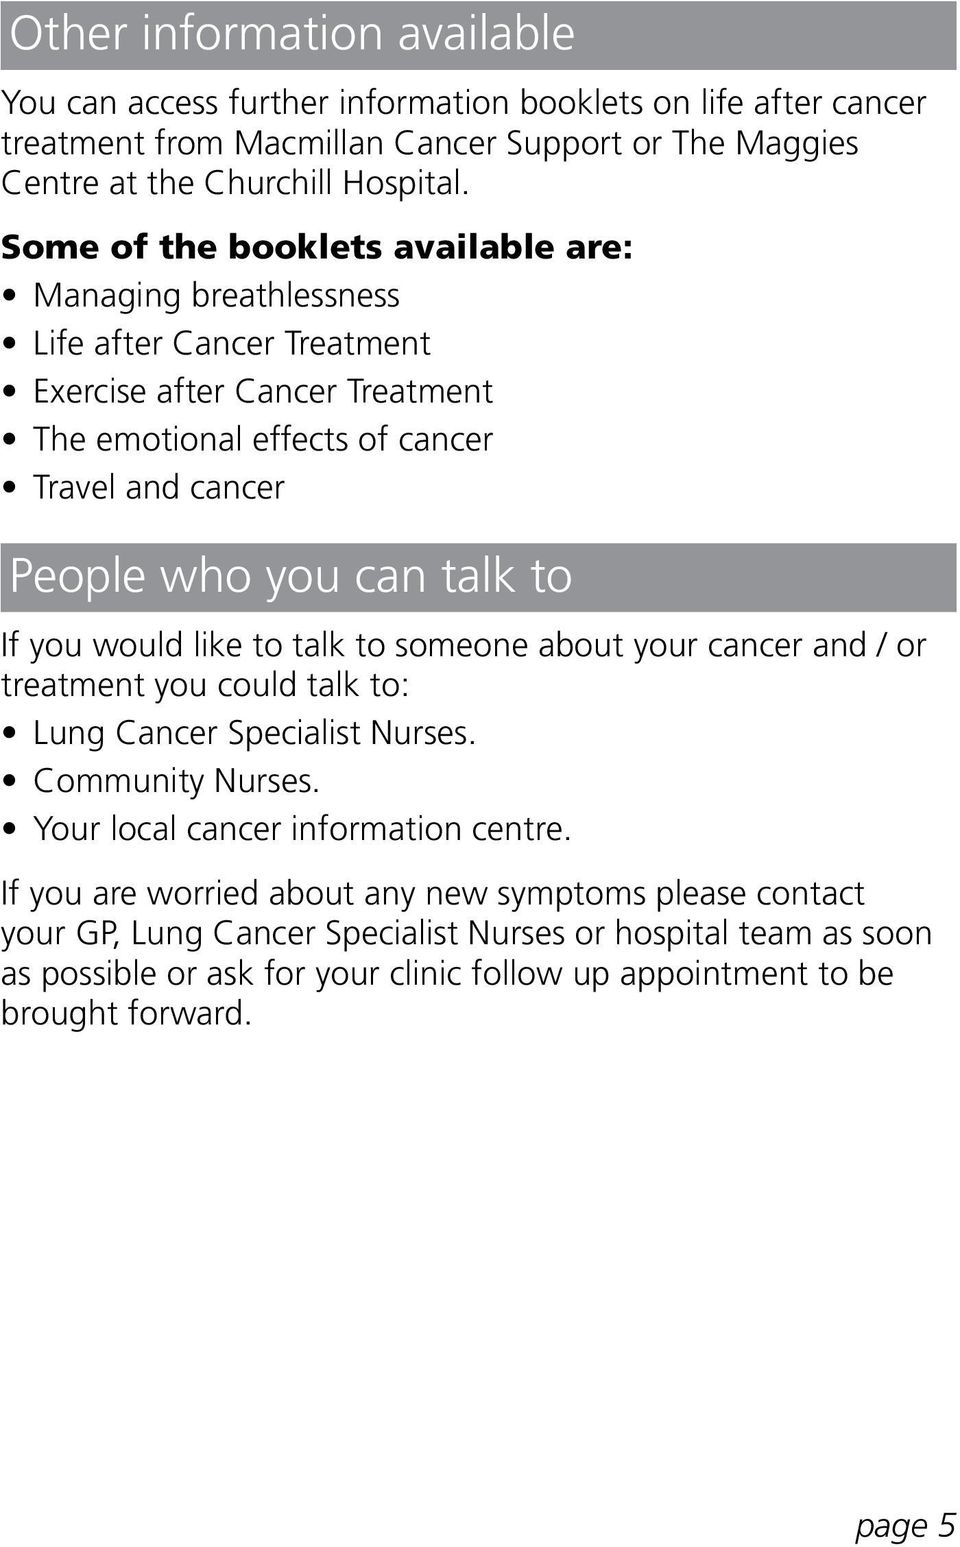 talk to If you would like to talk to someone about your cancer and / or treatment you could talk to: Lung Cancer Specialist Nurses. Community Nurses. Your local cancer information centre.